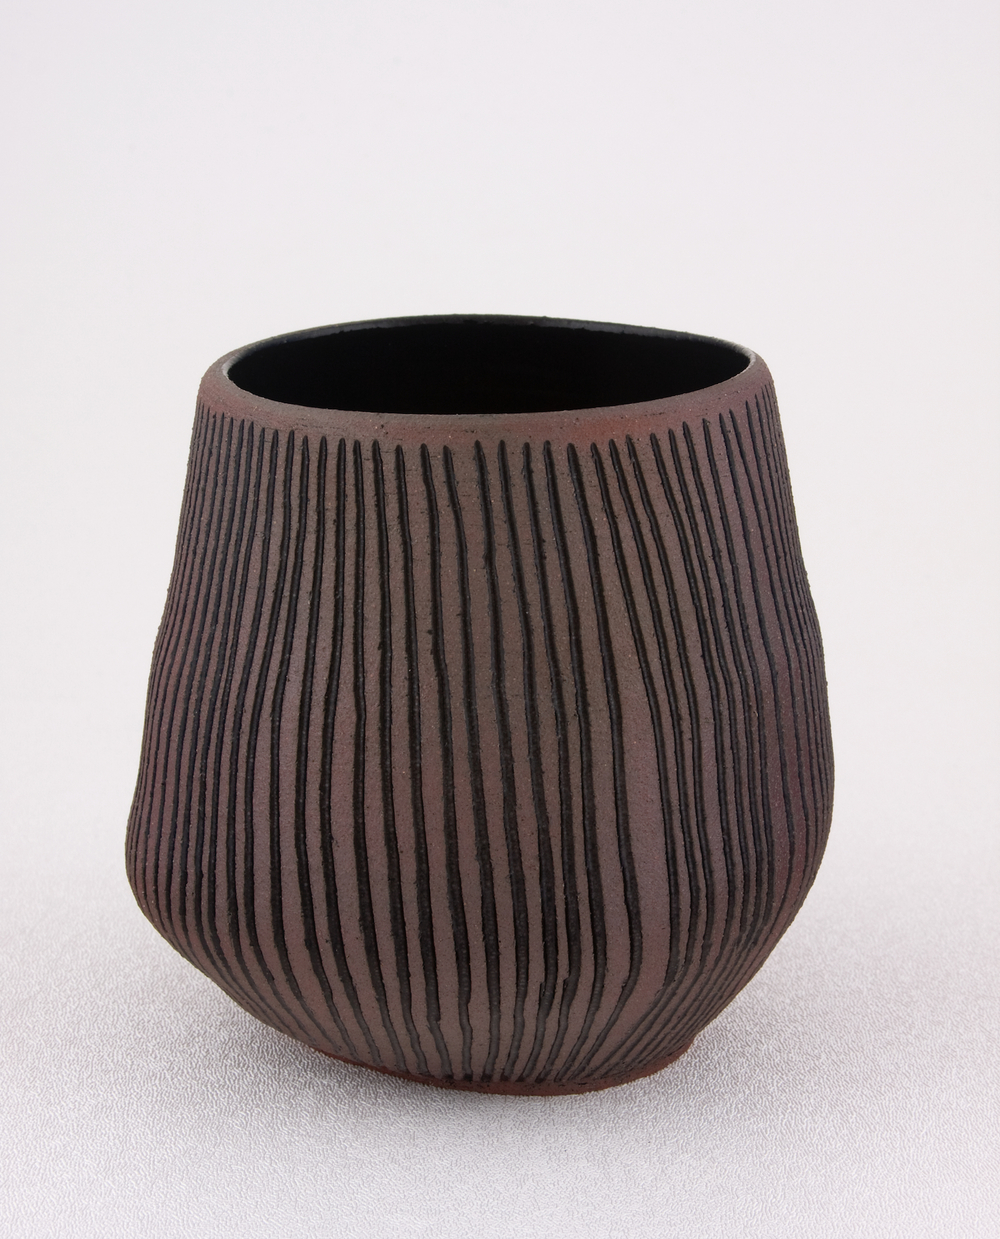 Shio Kusaka  Untitled (carved stripe 2)  2009 Stoneware 4 1/2h x 4w x 4d in SK022